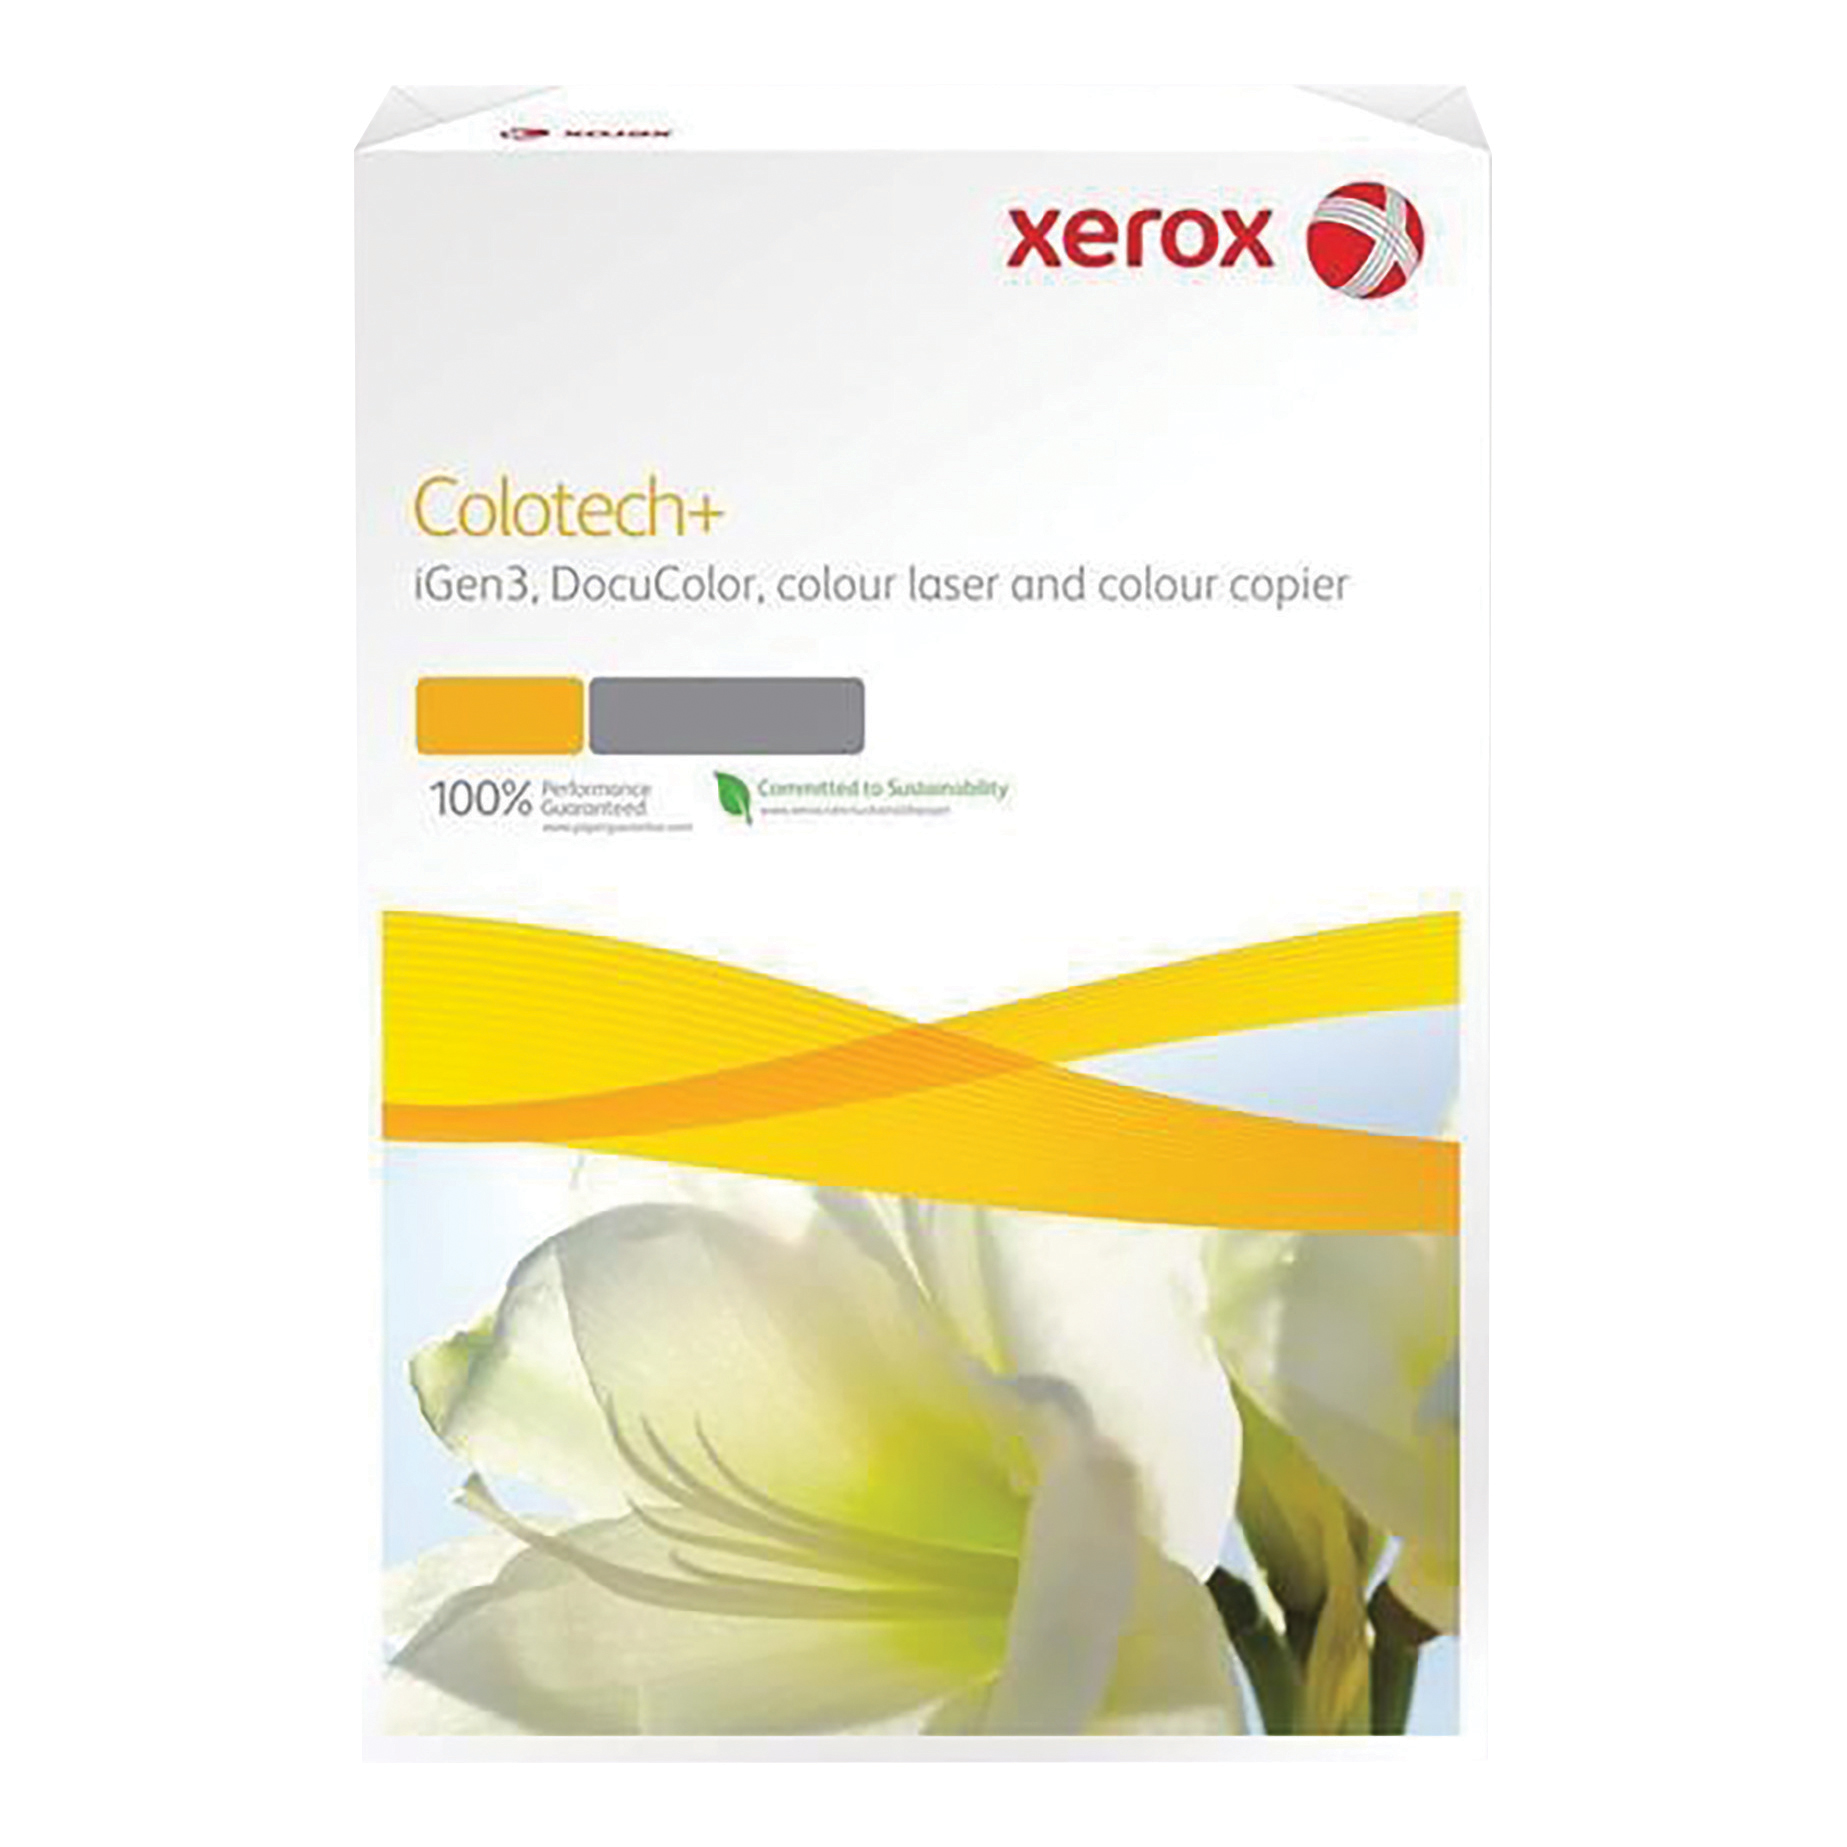 Xerox Colotech+ Digital Colour Paper Premium Ream-Wrapped 120gsm A4 White Ref 63761 [500 Sheets]